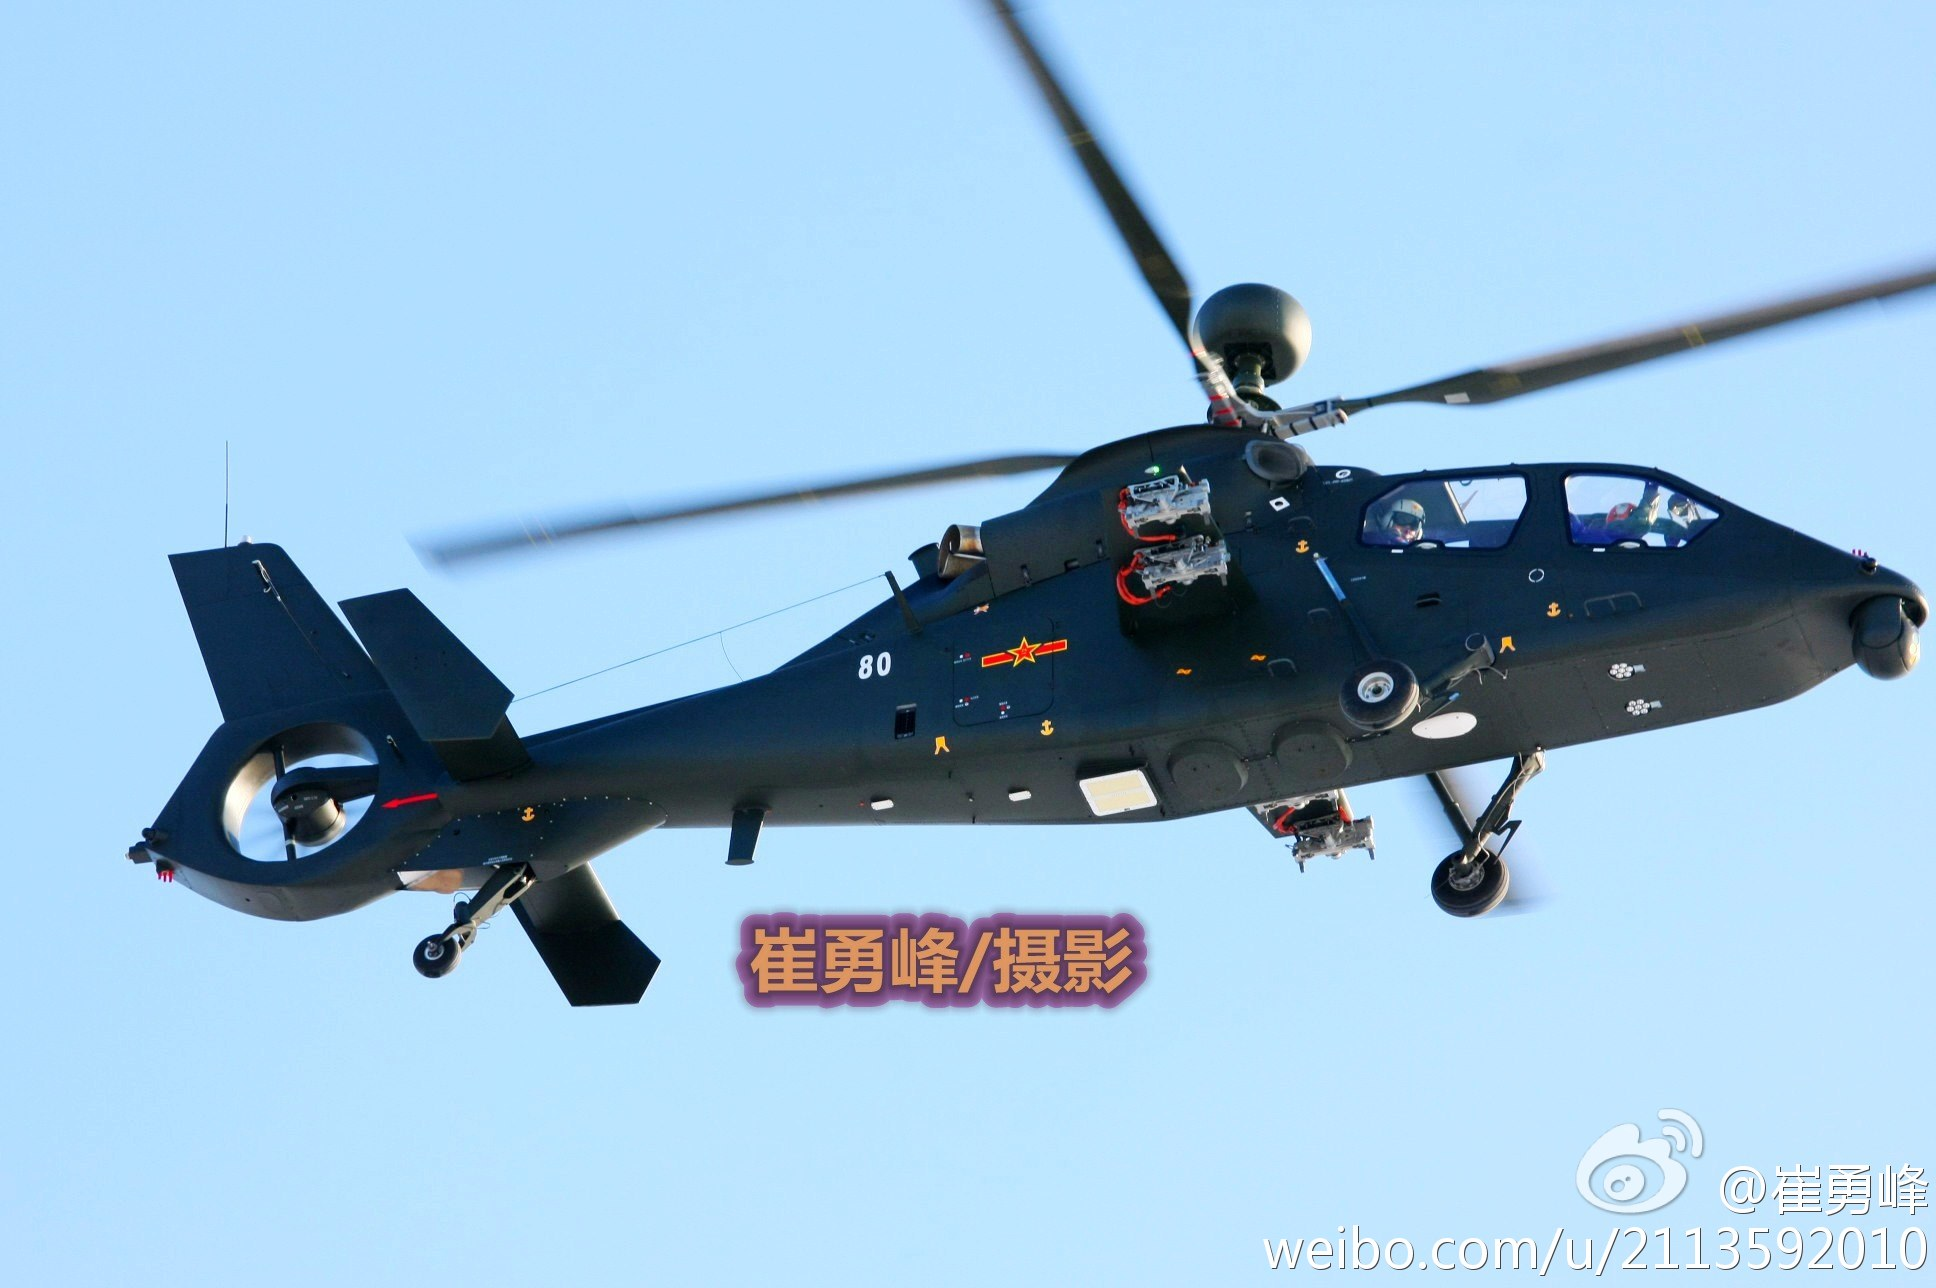 Z-19 light scout/attack helicopter 7dfadacajw1eccdy3n8ijj21hs0zs79r1